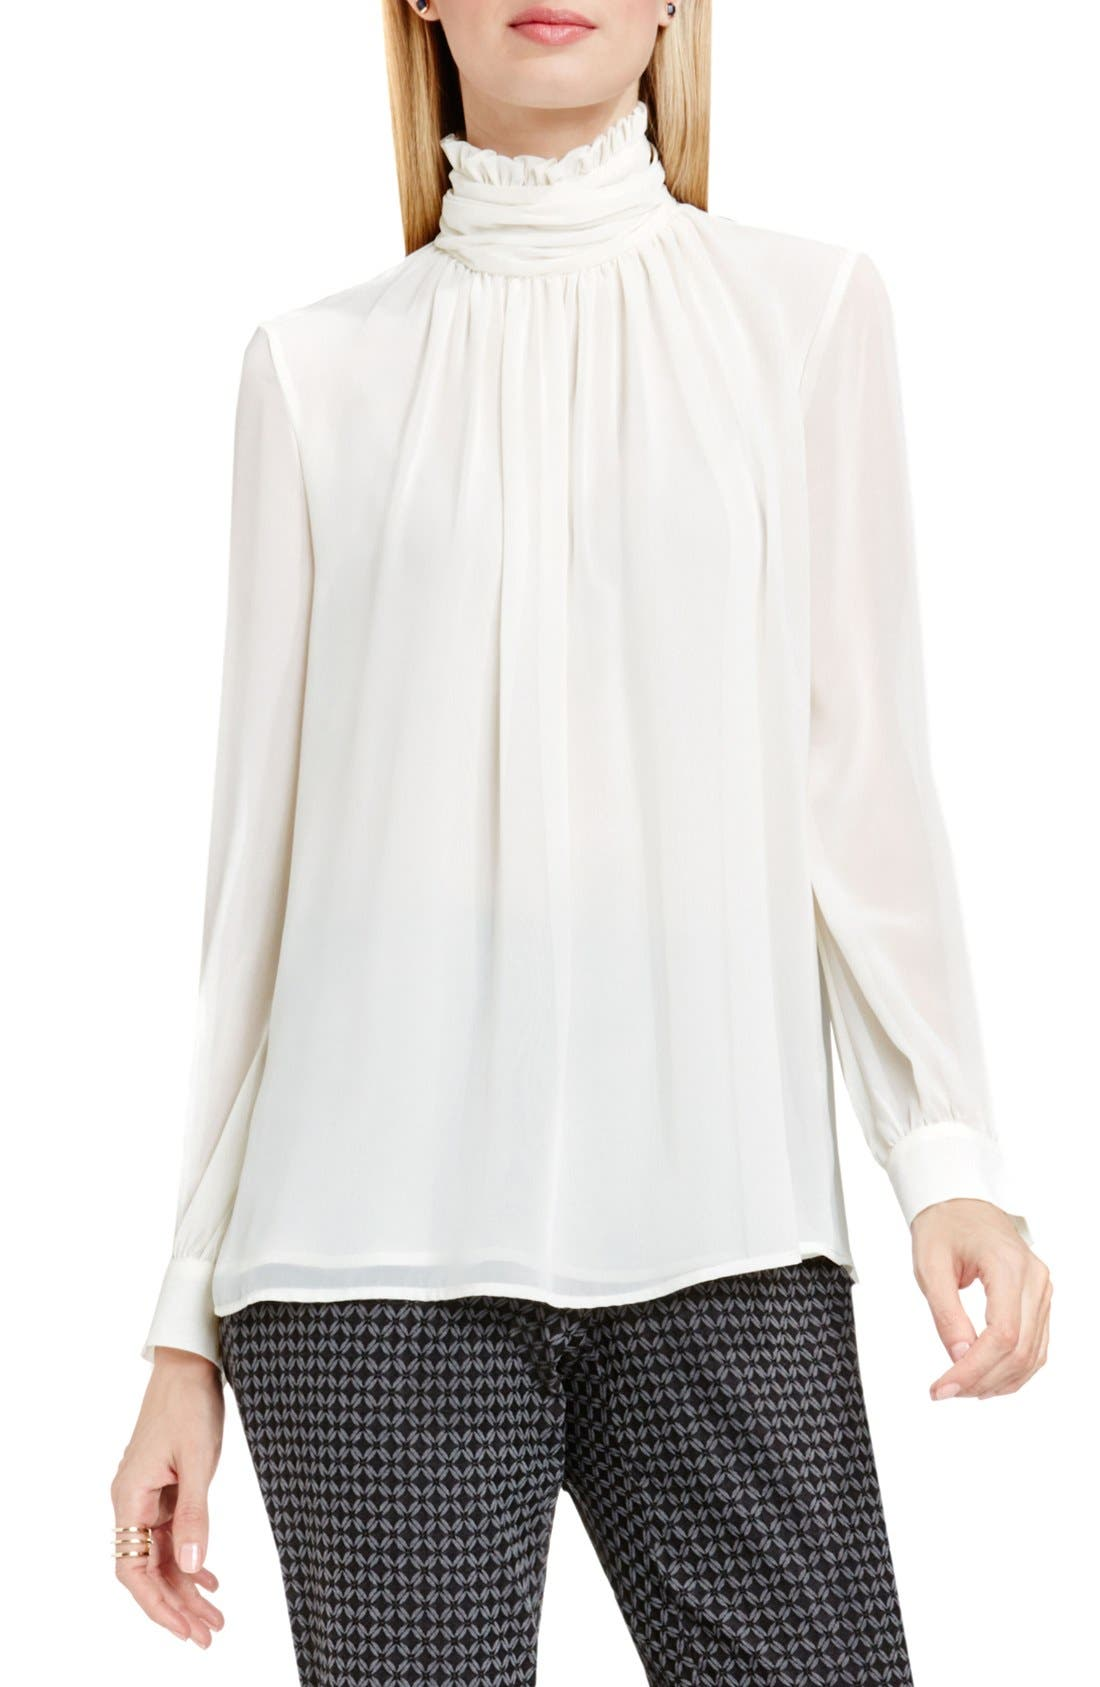 Main Image - Vince Camuto Ruffle Collar Blouse (Regular & Petite)